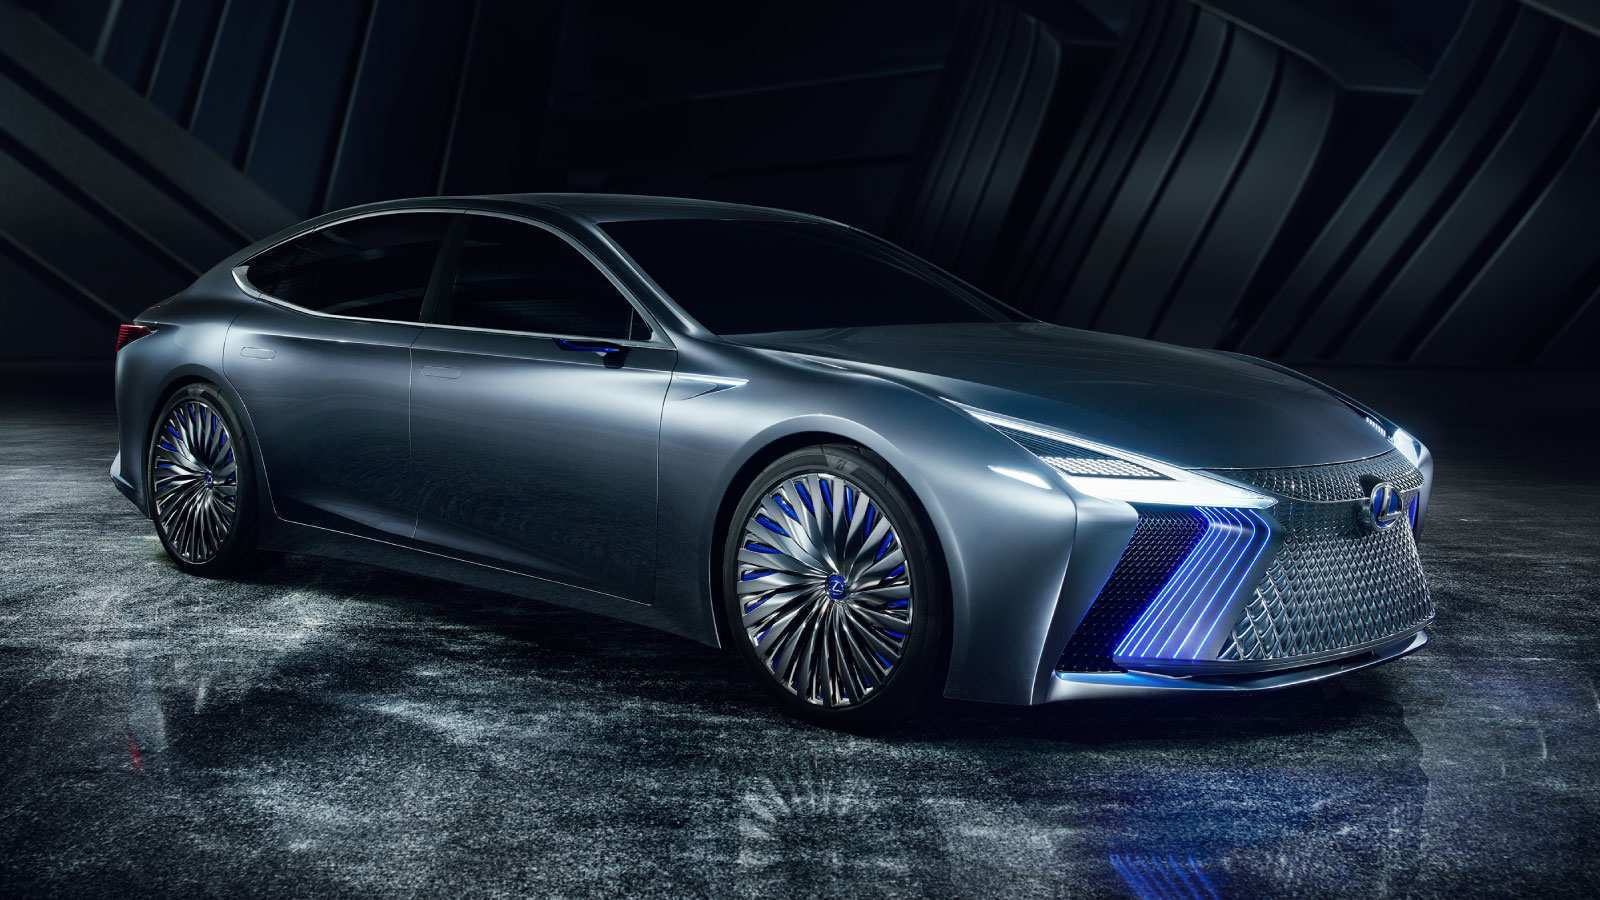 39 Best Review When Does Lexus Exterior 2020 New Concepts Specs with When Does Lexus Exterior 2020 New Concepts